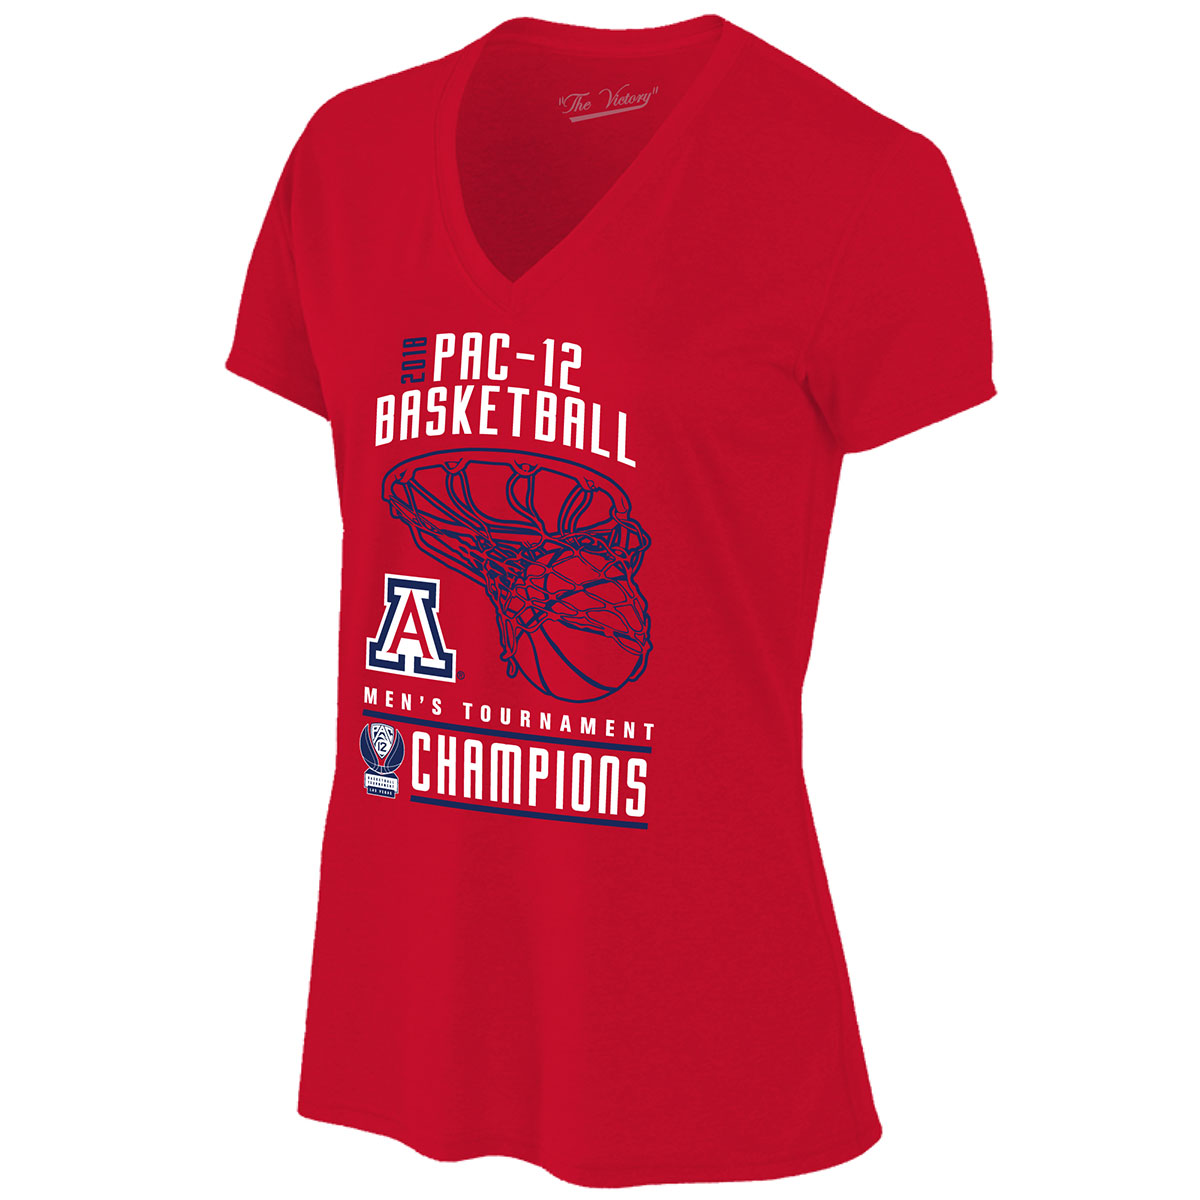 Image For 2018 Arizona PAC-12 Men's Basketball Tourn Champs Ladies Tee